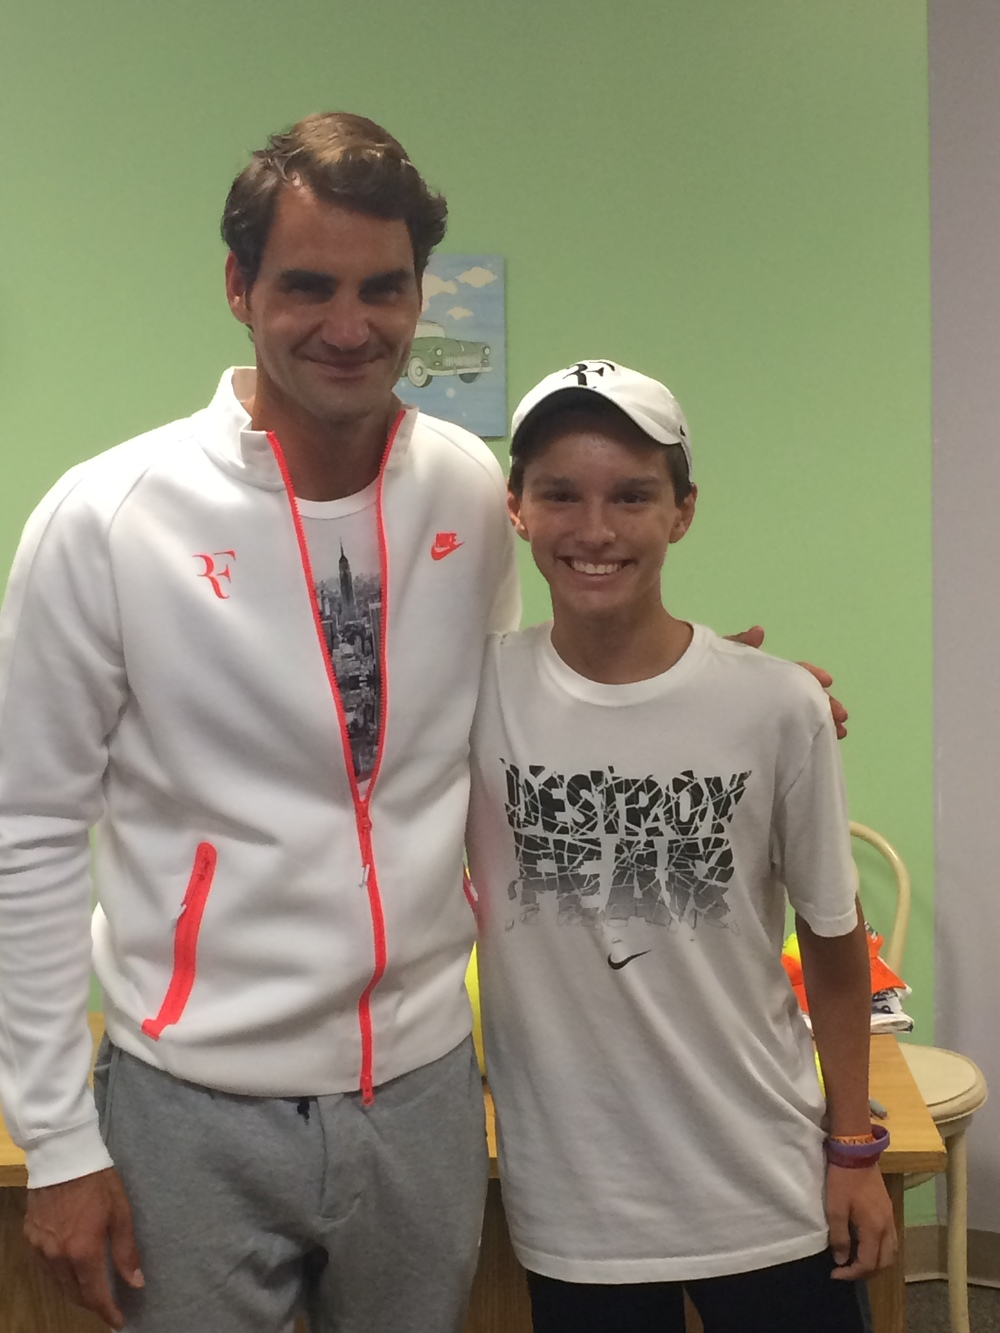 Jakob Mueller, the 2015 Rockin the Bald Rockstar, and Roger Federer at the 2015 U.S. Open. Thank you Make A Wish!